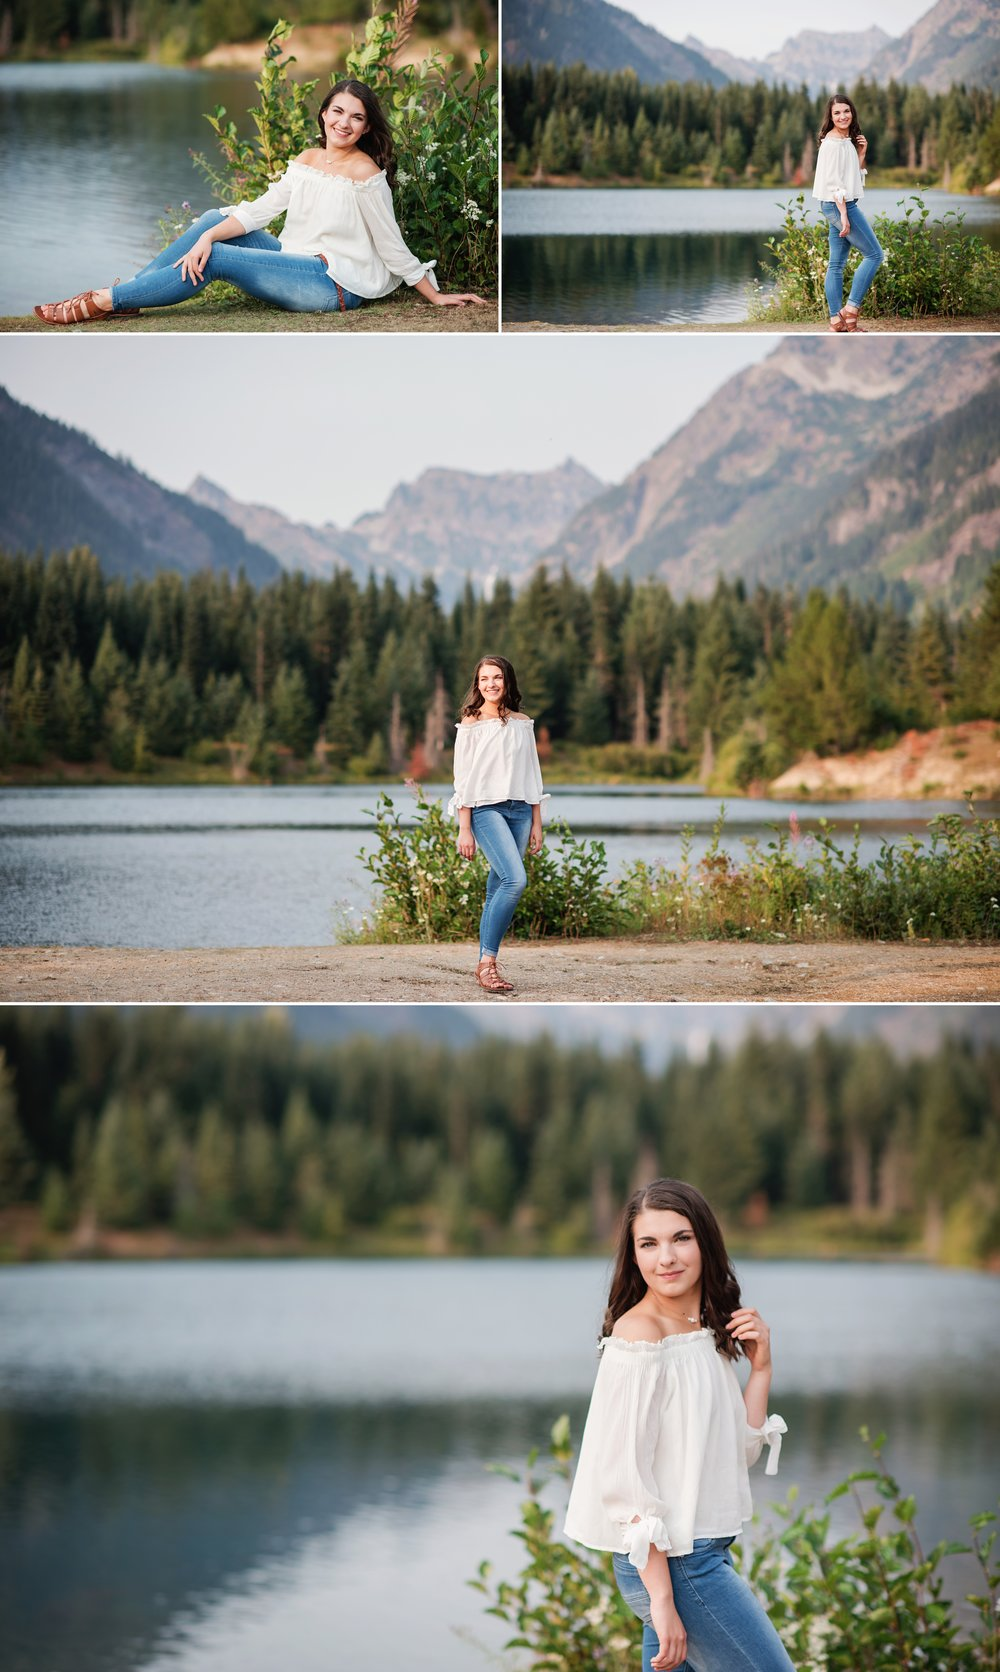 Mary Vance Photography Senior Girl Photographer Sammamish Washington